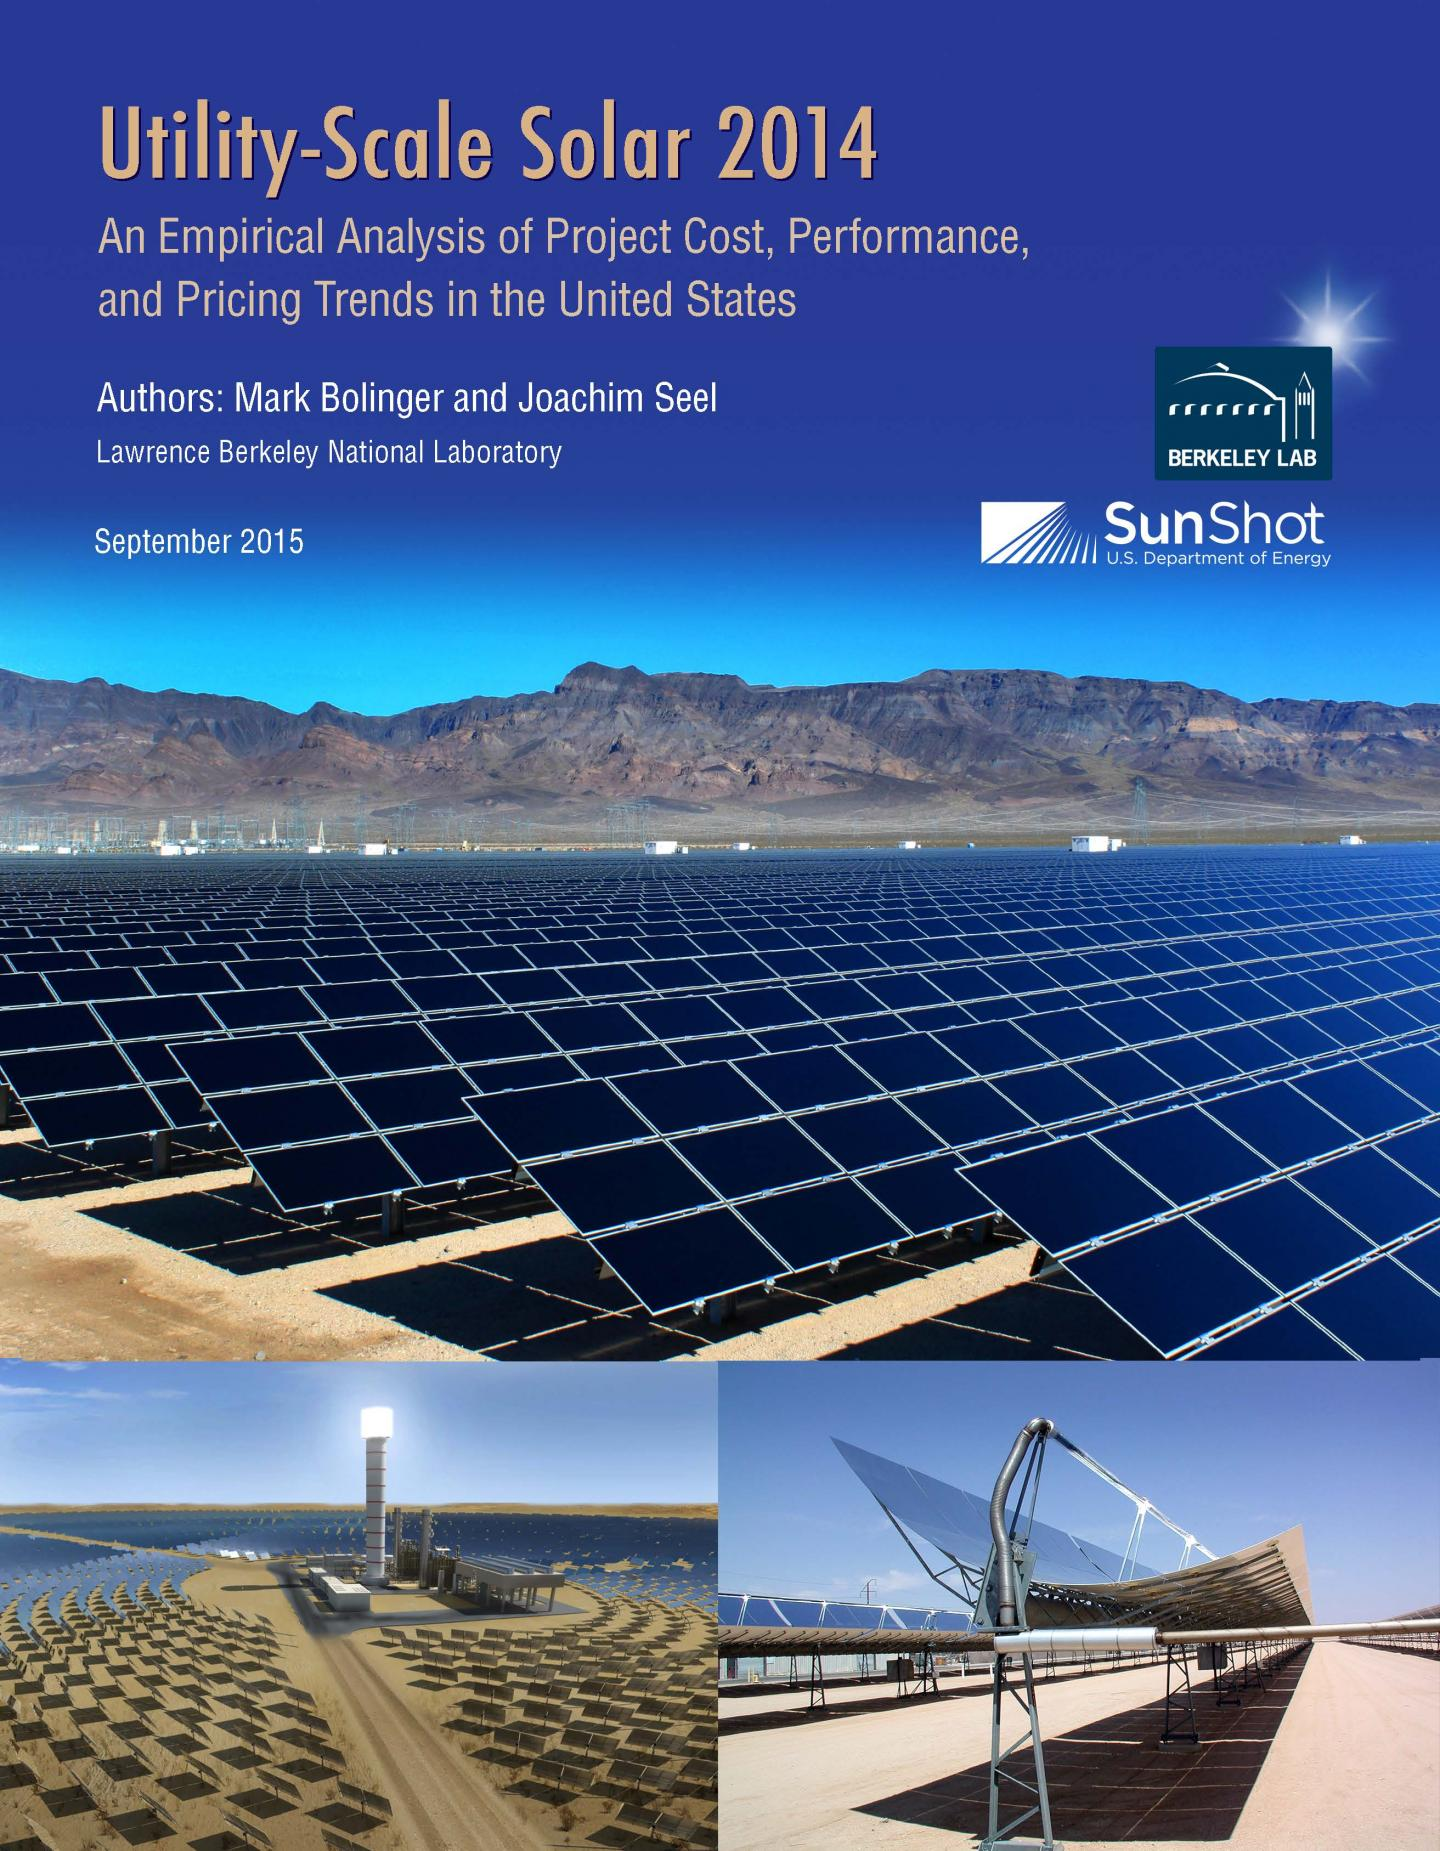 Price Of Solar Energy In The United States Has Fallen To 5ckwh On